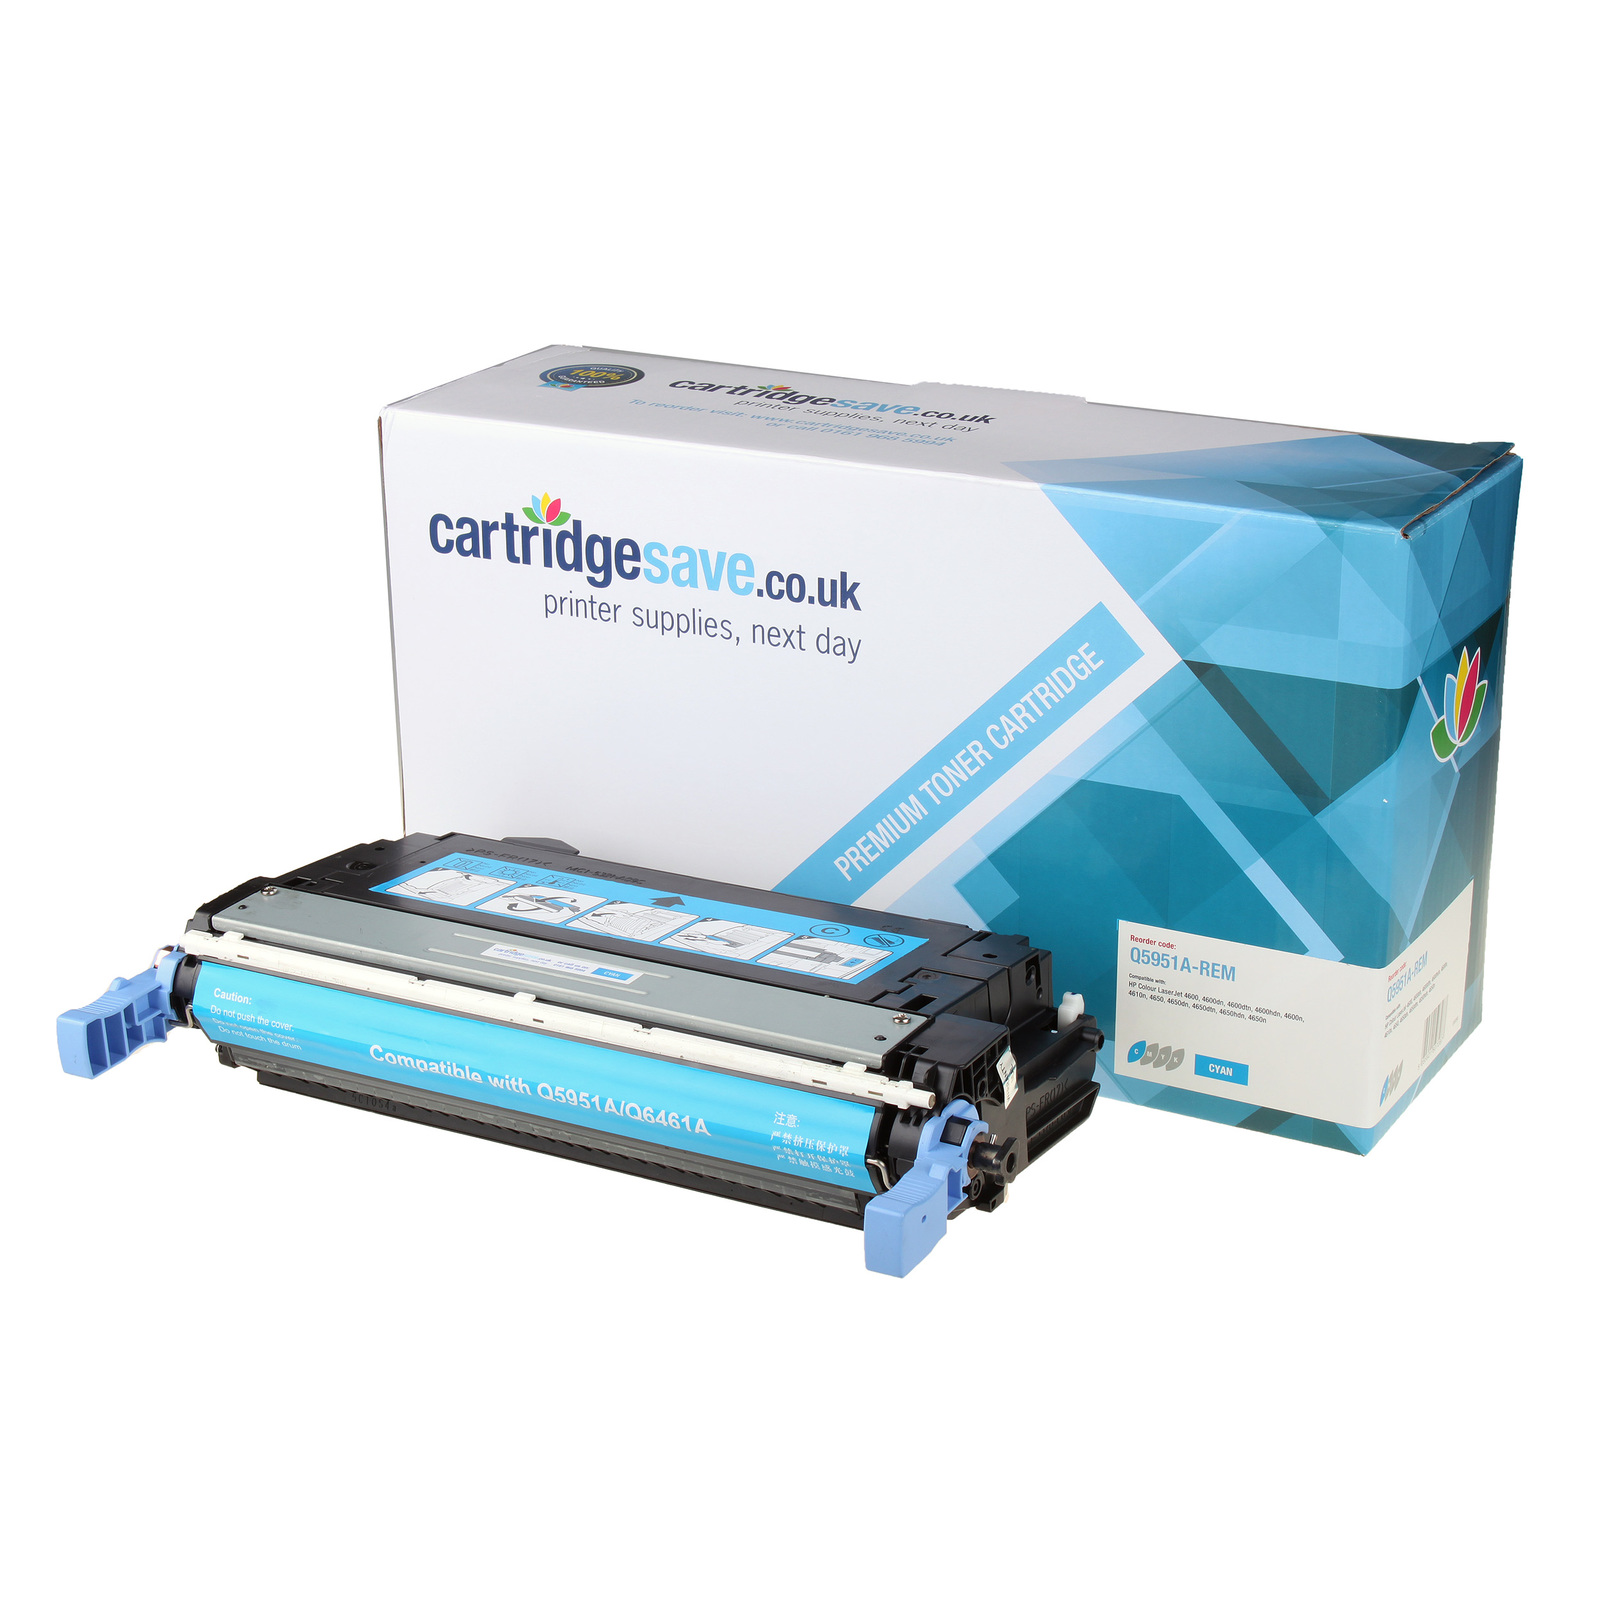 Compatible HP 643A Cyan Toner Cartridge (Replaces Q5951A Laser Printer Cartridge)